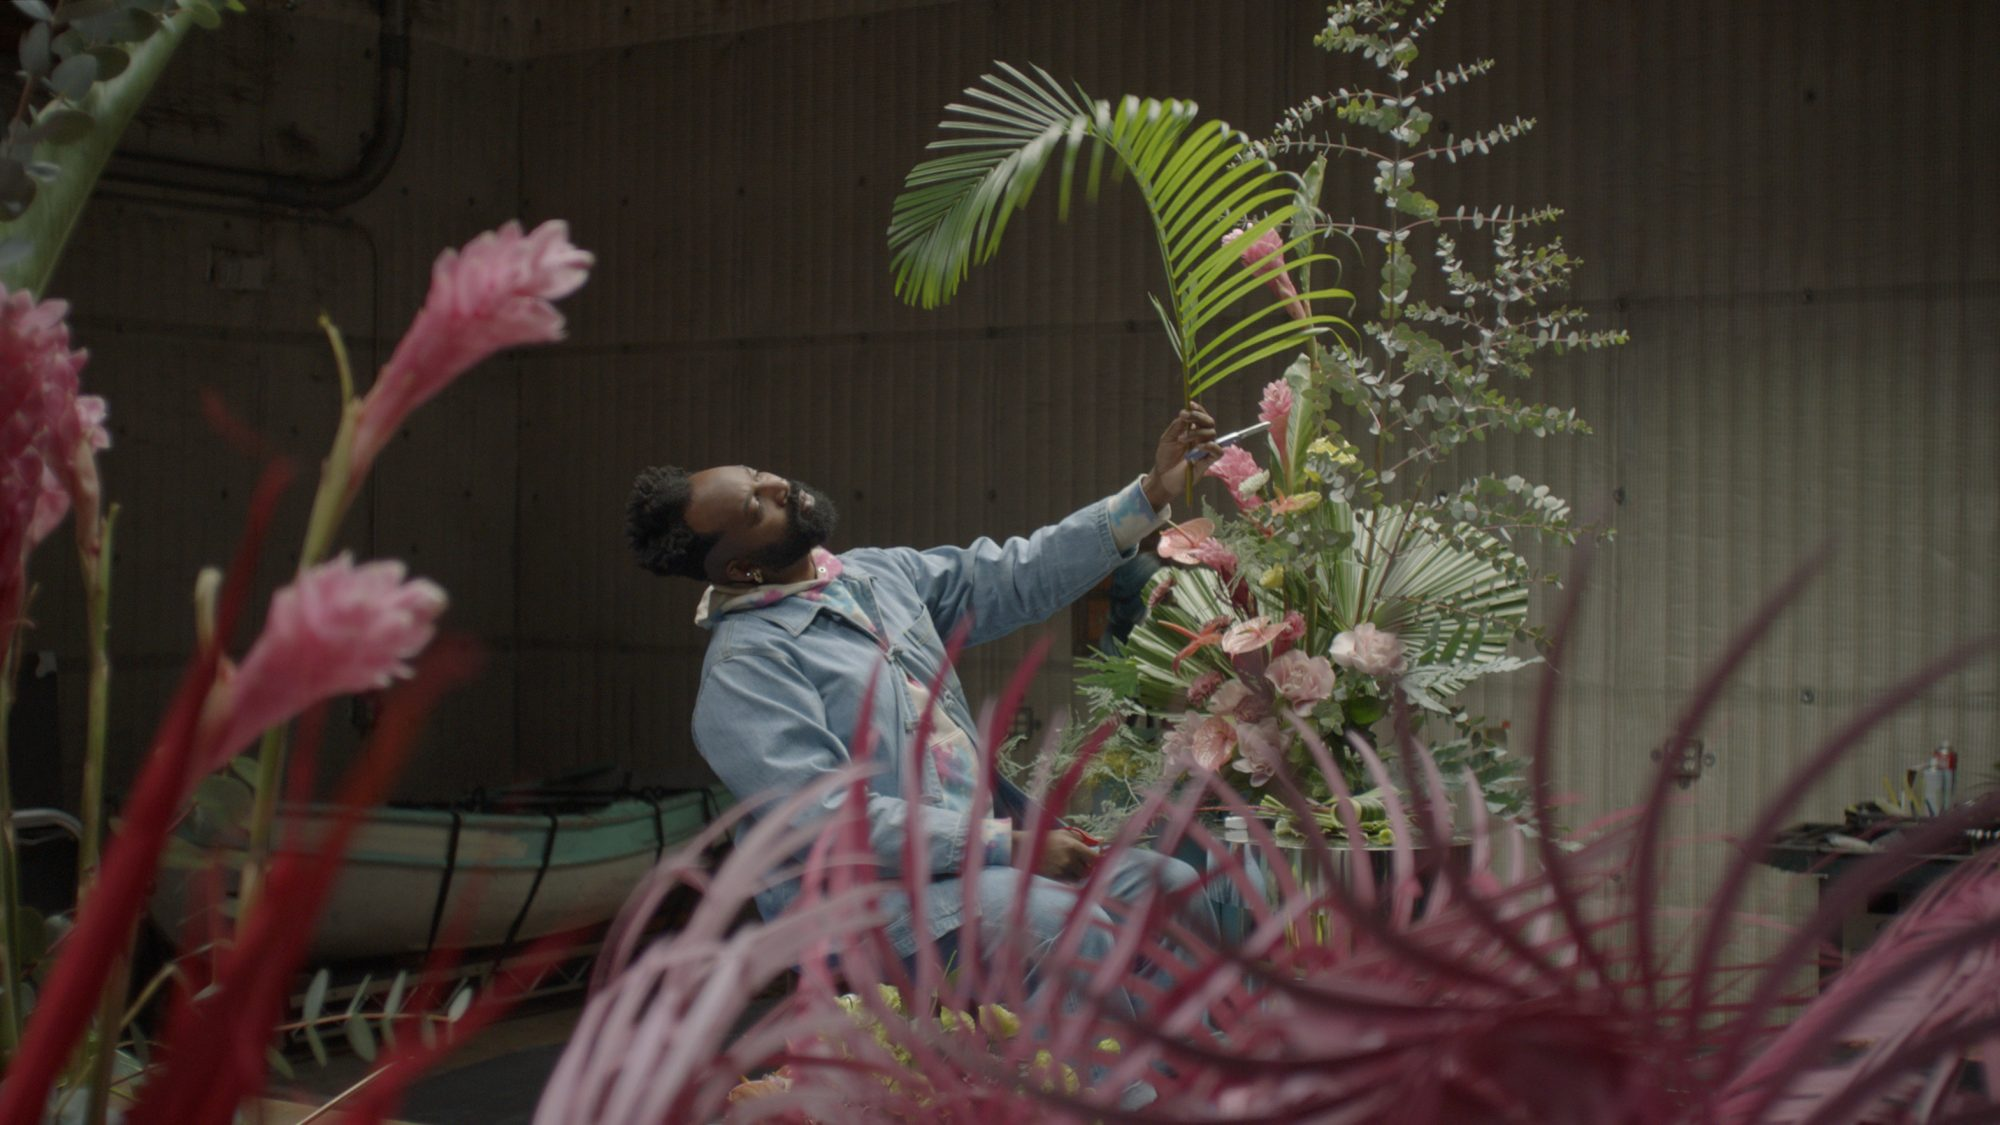 Maurice Harris designing a floral installation